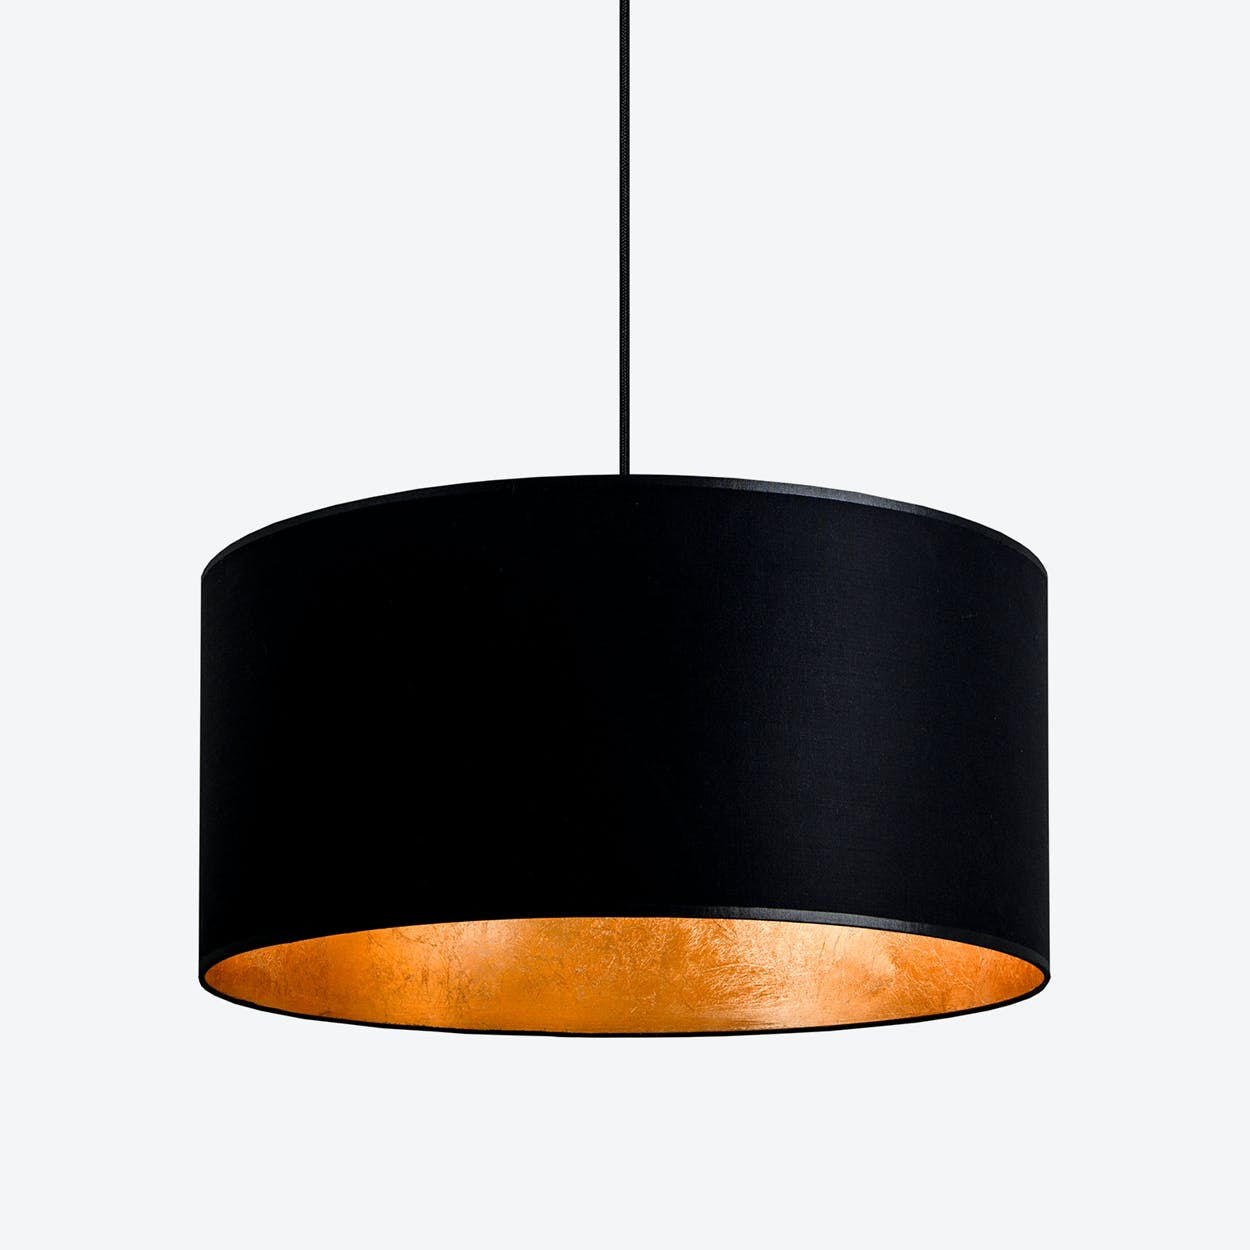 MIKA XL Single Pendant Light in Black with Gold Leaf